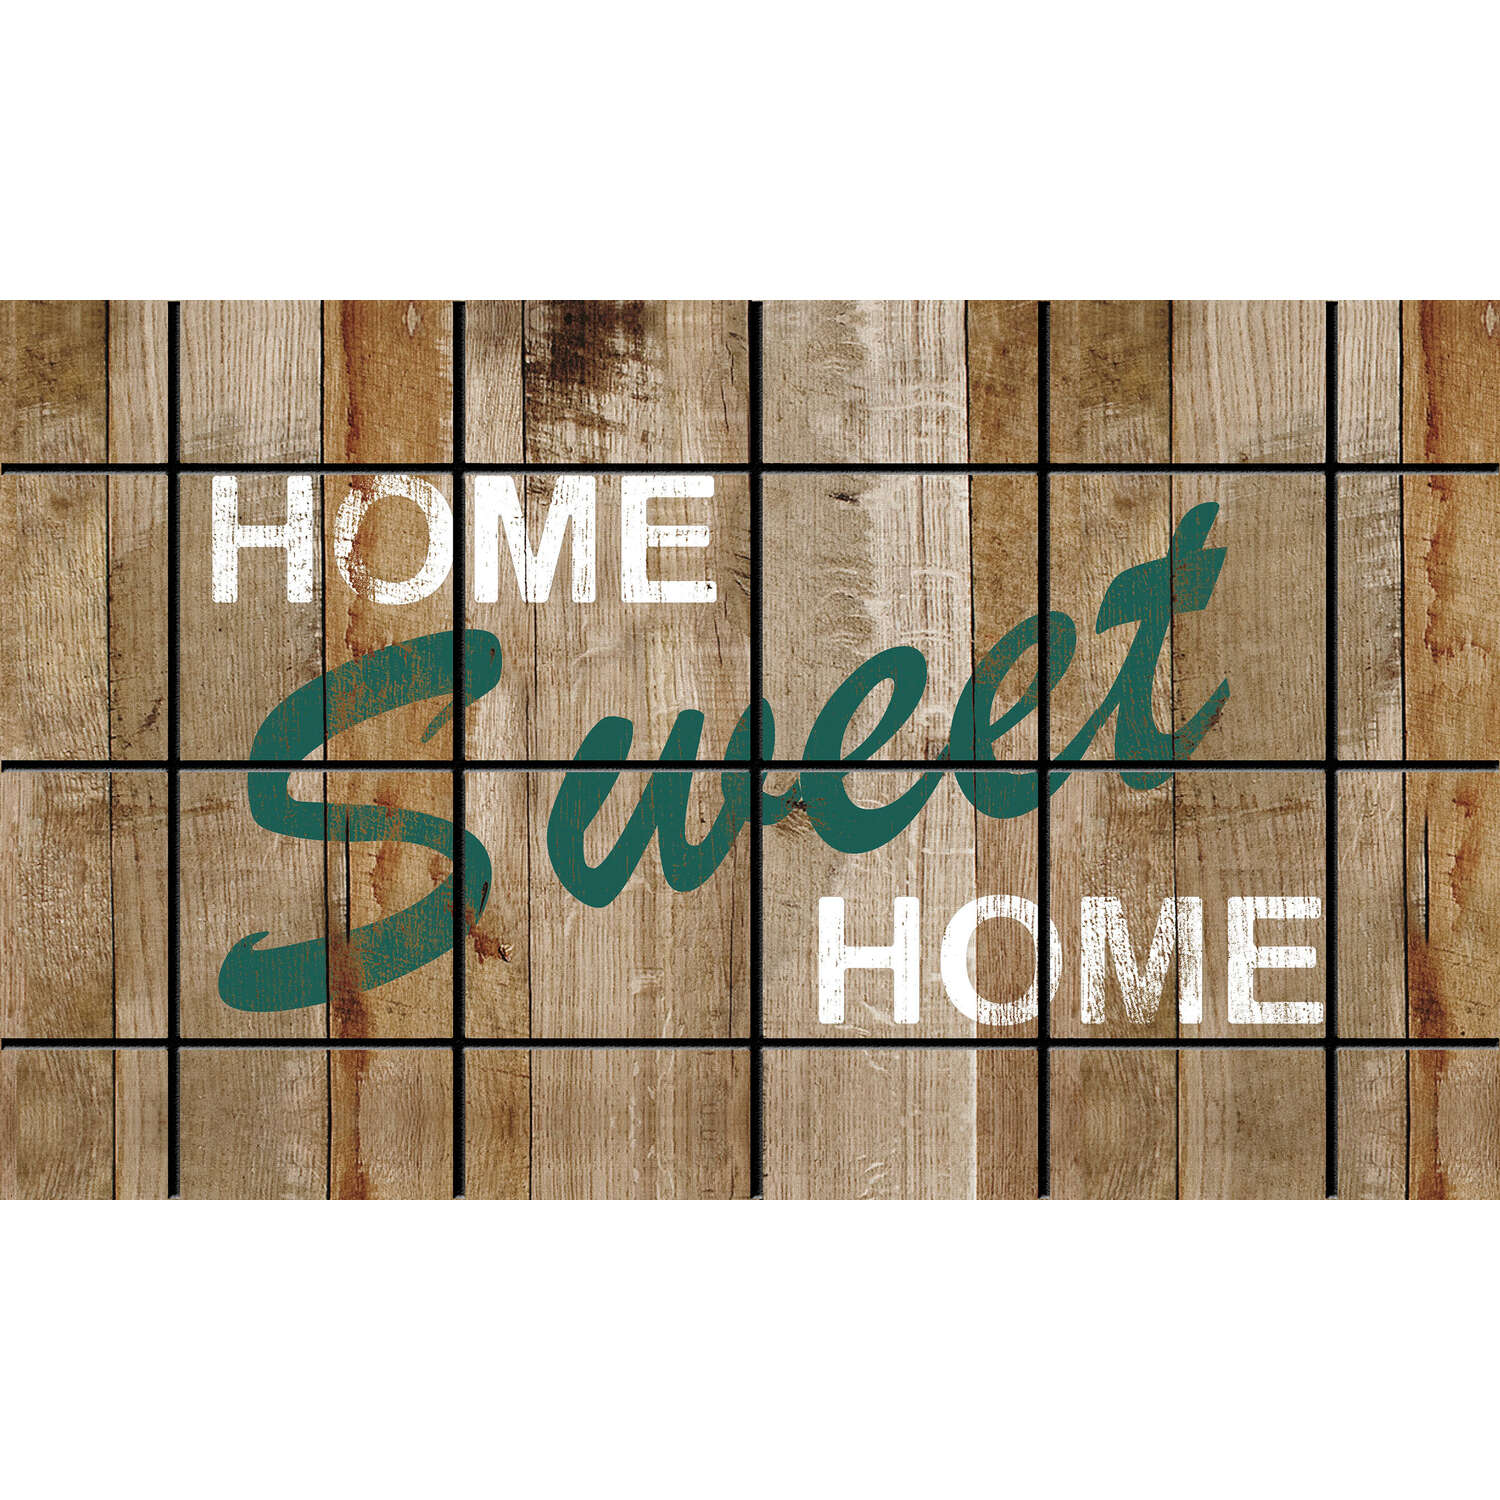 Sports Licensing Solutions  Home Sweet Home  Multicolor  Nylon  Nonslip Floor Mat  30  L x 18  W